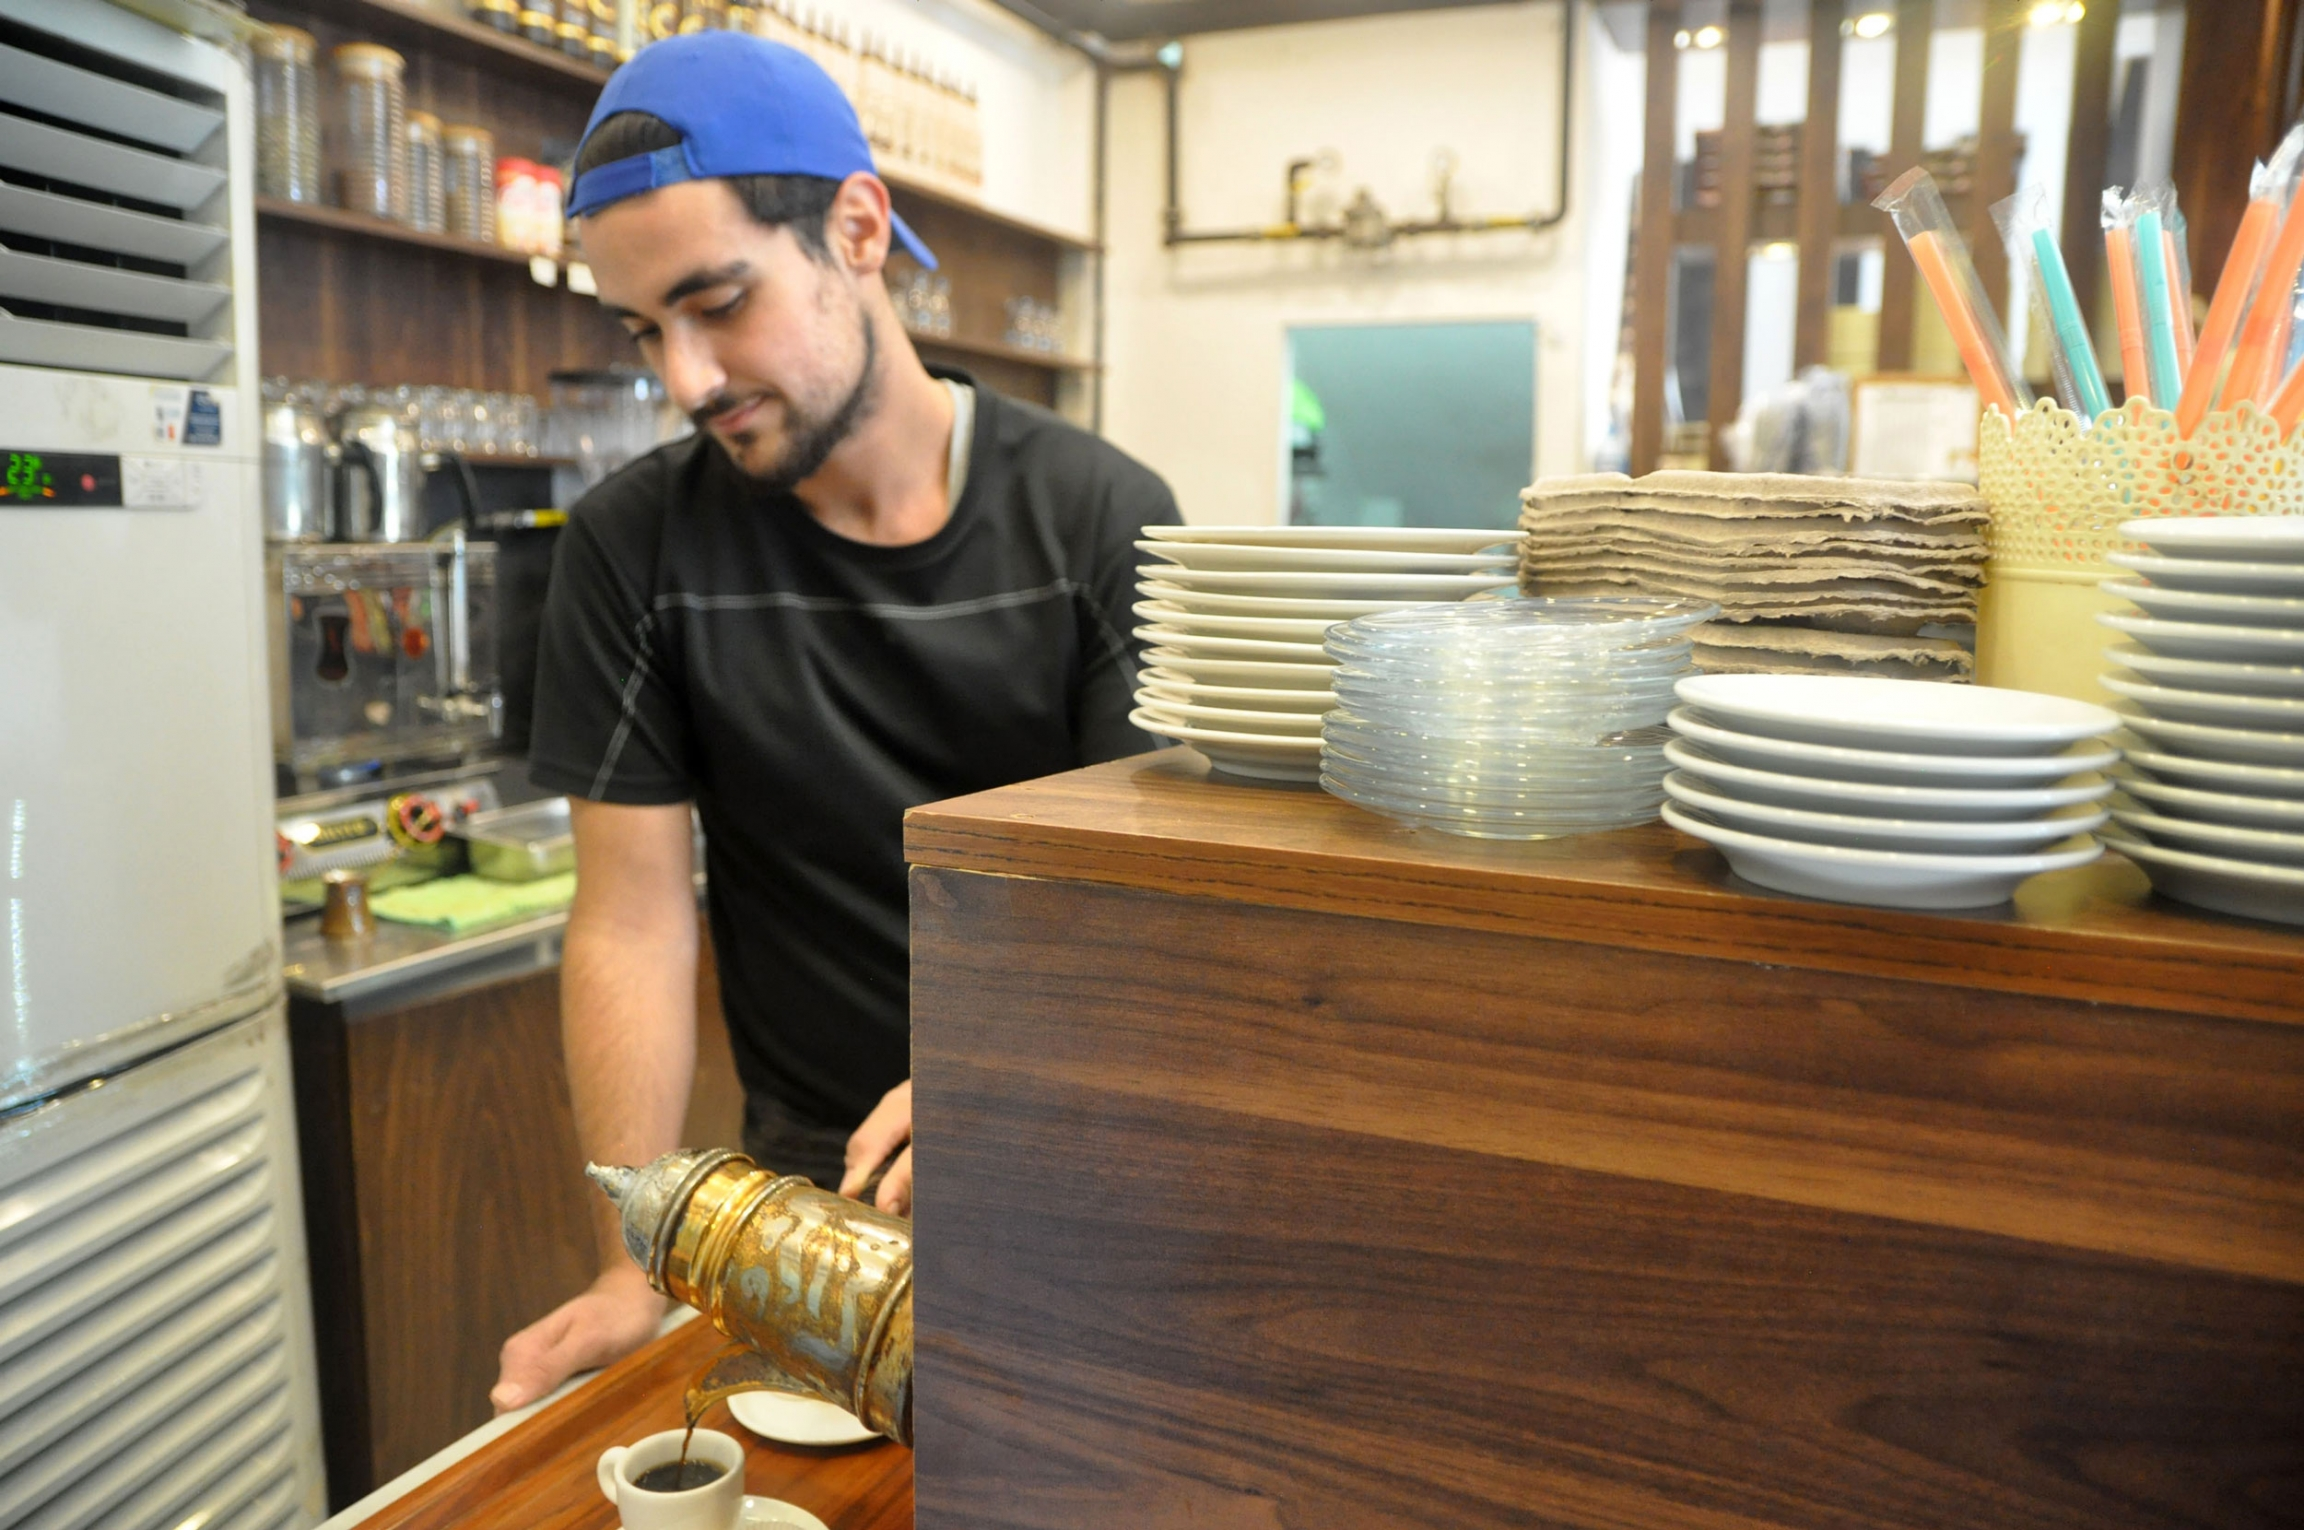 A worker pours a cup of strong coffee at a Syrian sweet shop in Istanbul. Unemployment rates in Turkey are high, and the pandemic affected Syrian workers particularly severely.